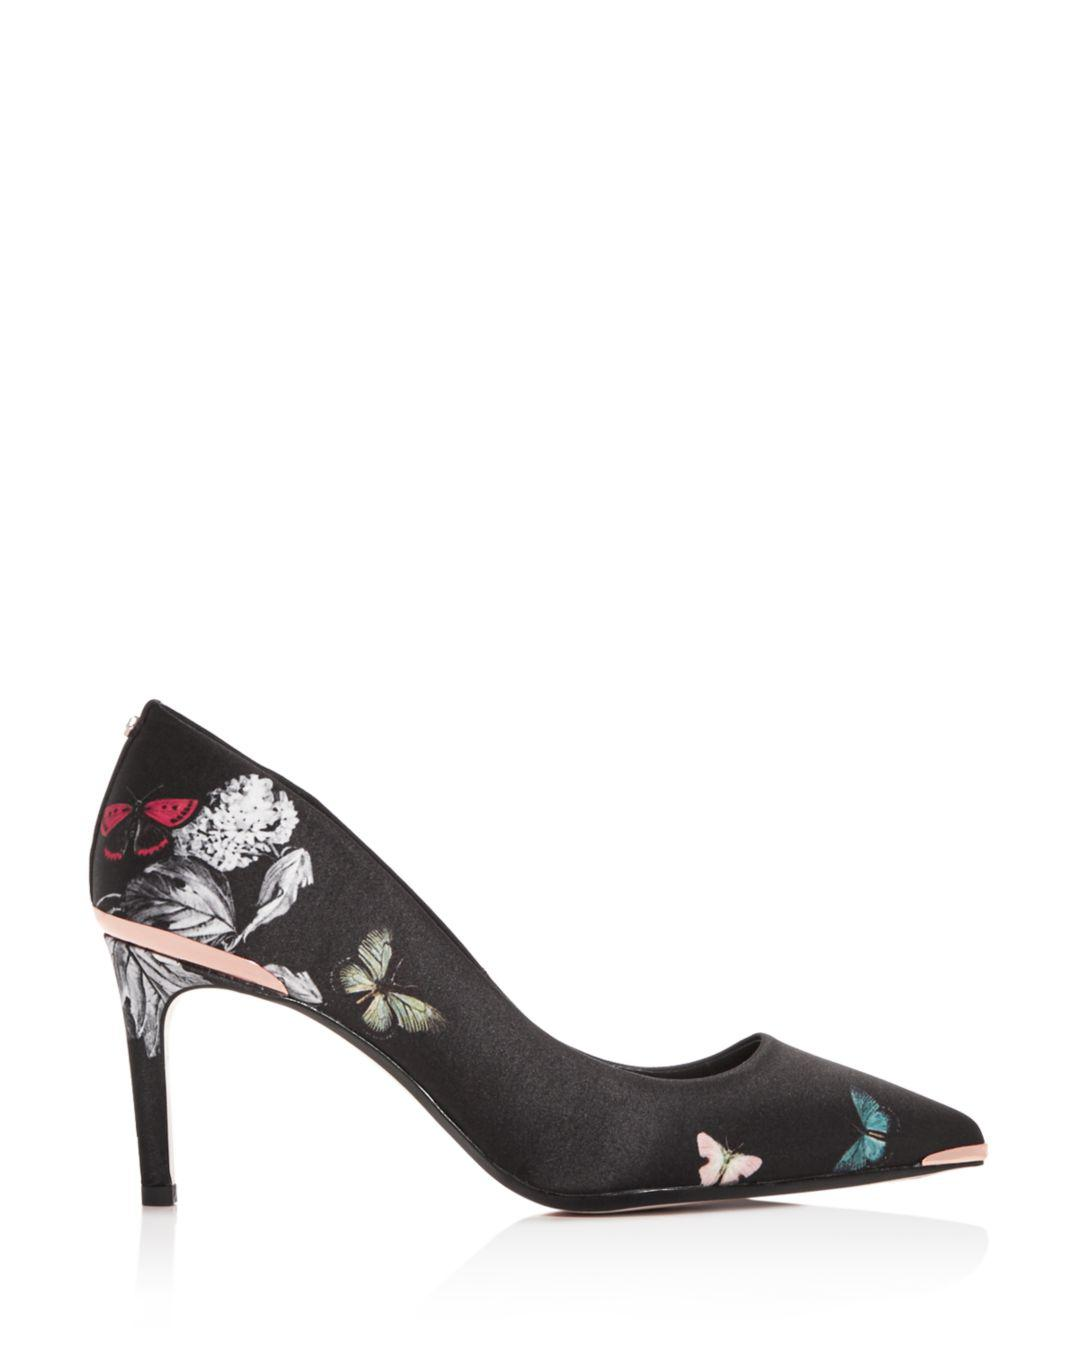 bb33d0a7d1fc2 Lyst - Ted Baker Women s Wishtrip Floral Pointed-toe Pumps in Black